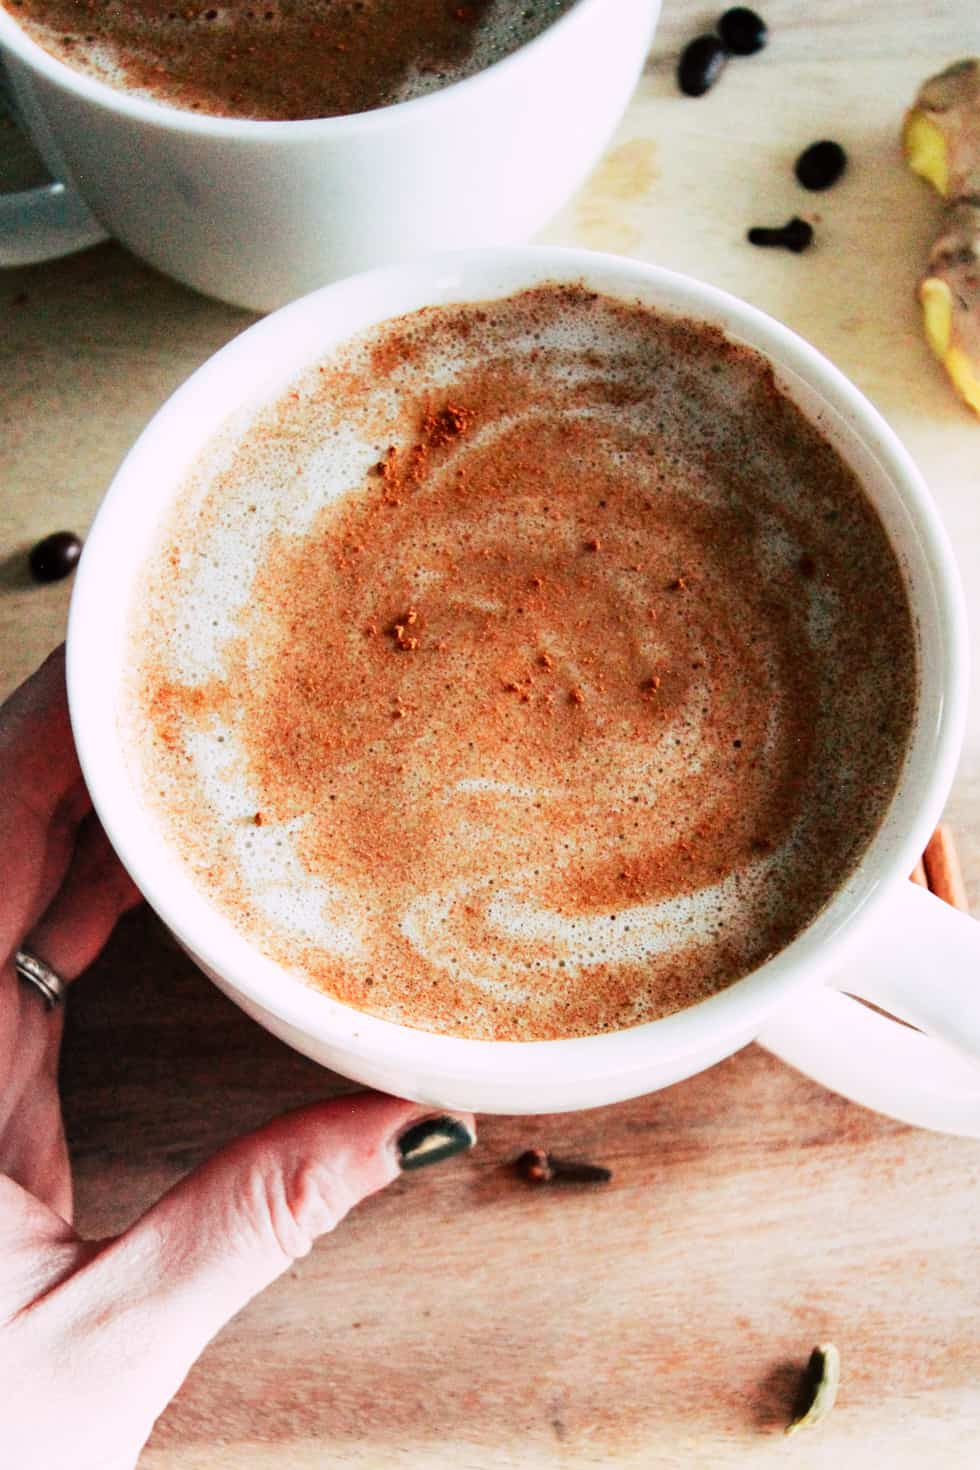 Hand holding a white mug with cinnamon latte.